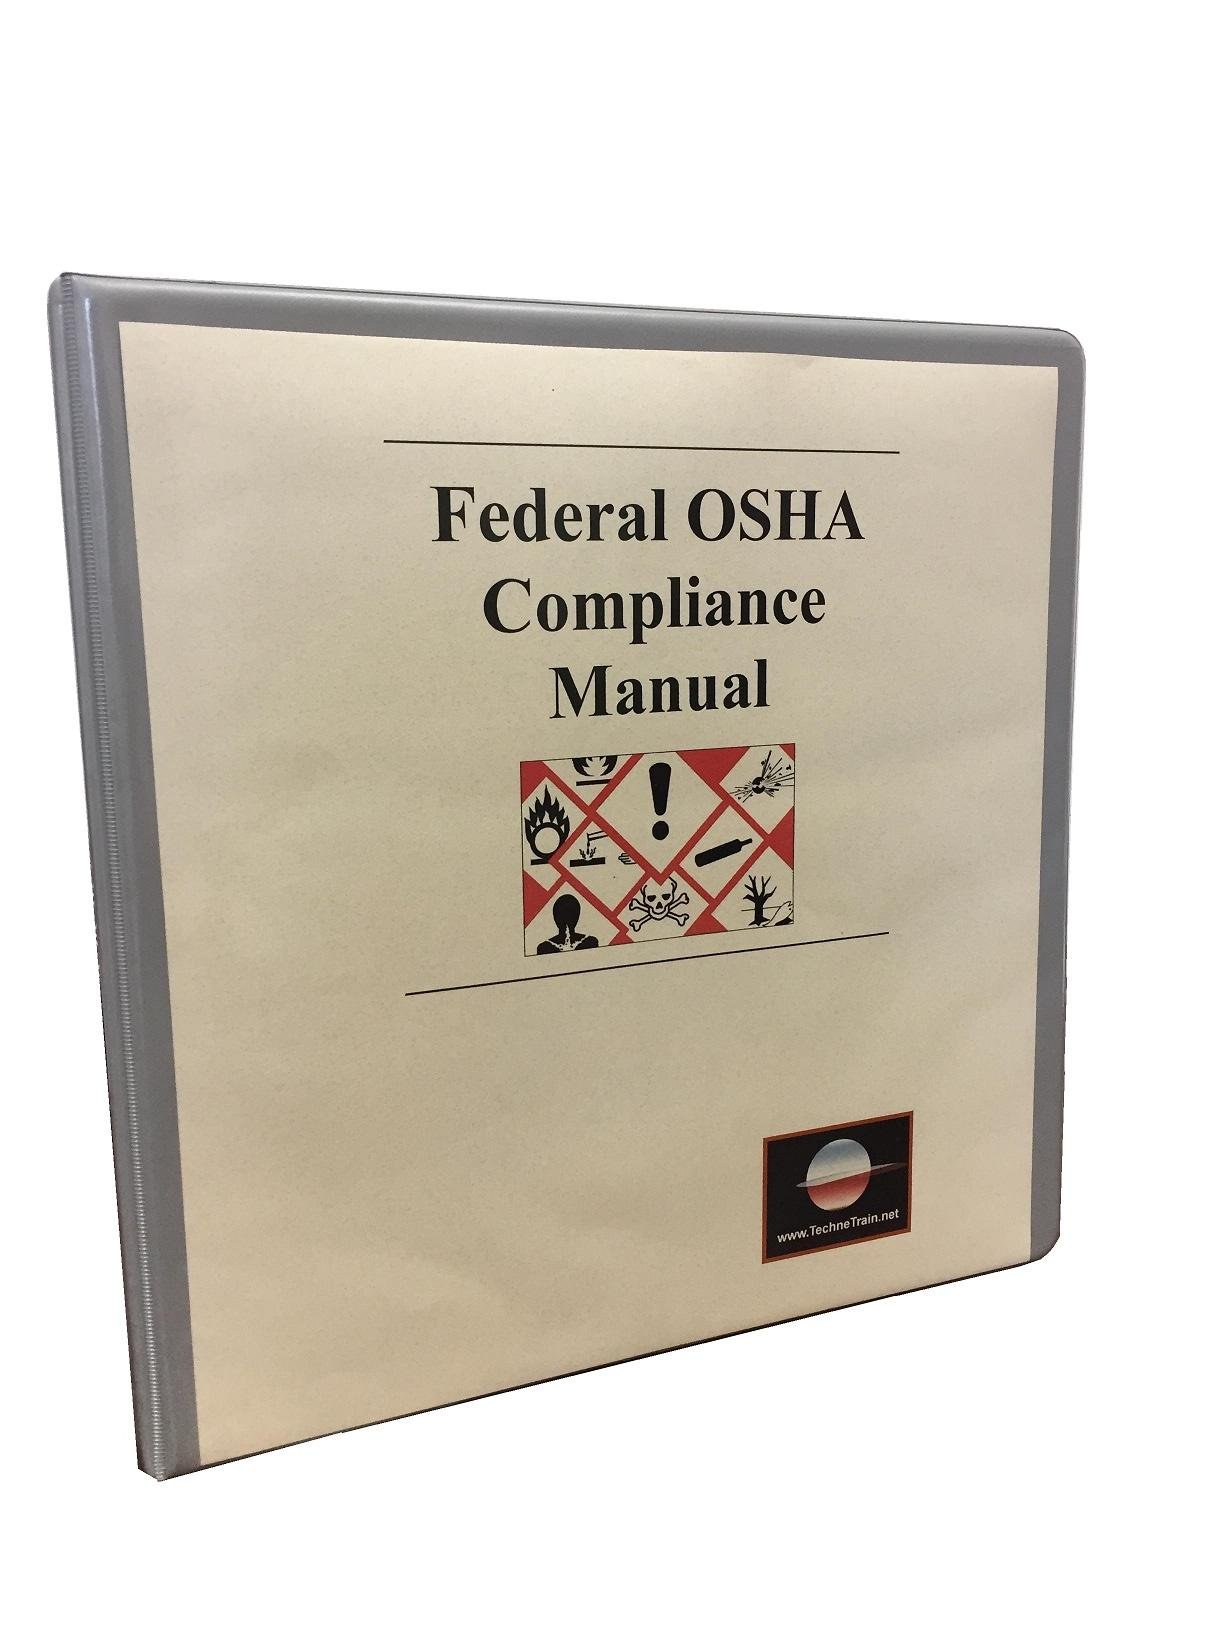 TechneTrain Federal OSHA Compliance Manual - 2017 (CEMETERY AND FUNERAL) by TechneTrain (Image #1)